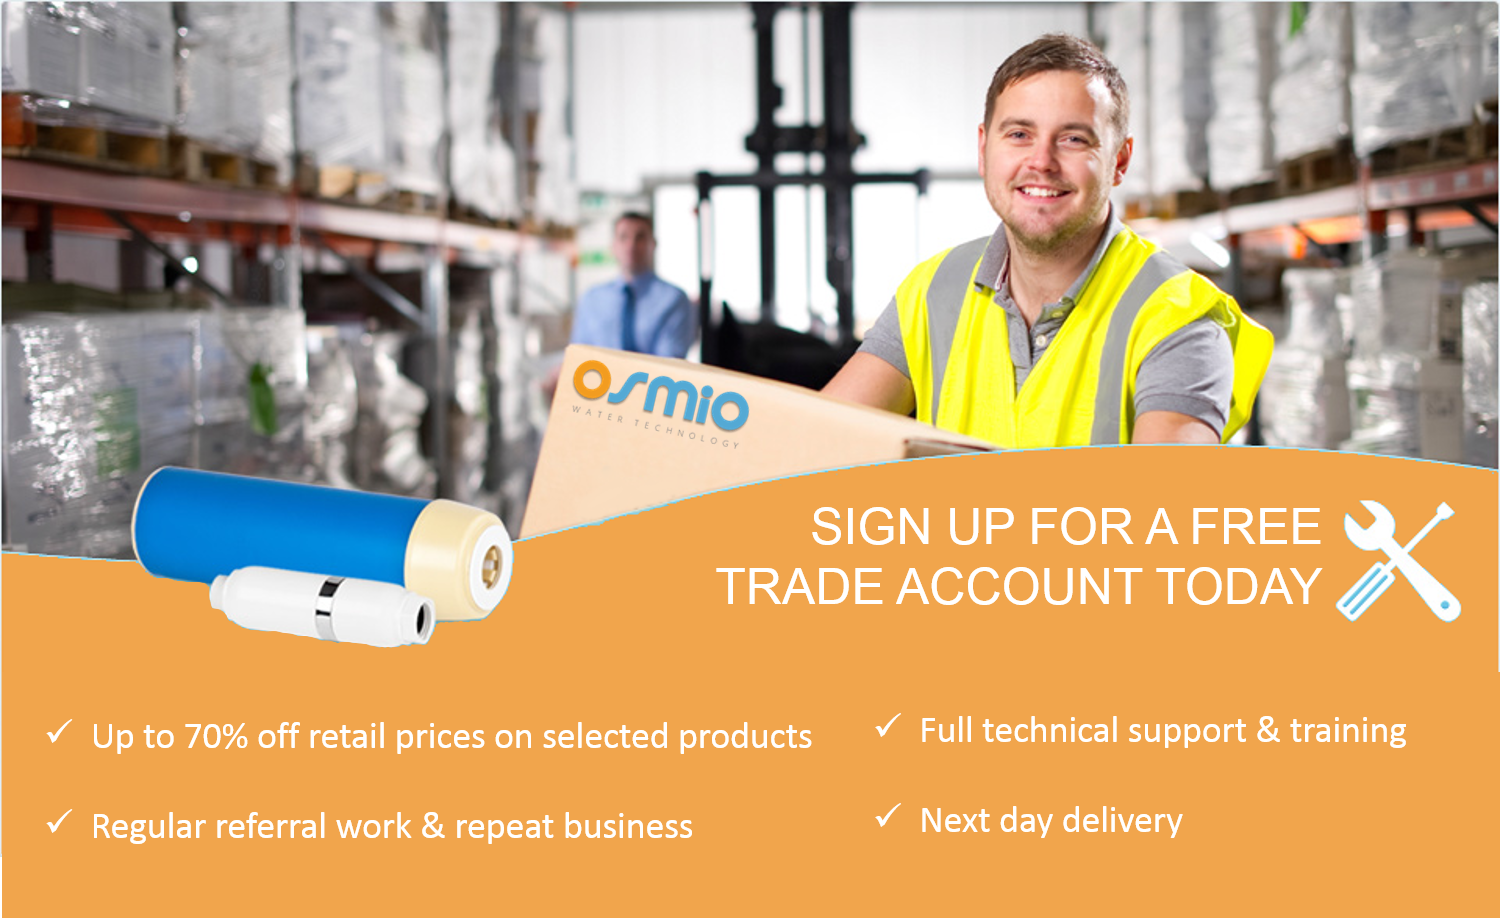 Apply for a trade account today